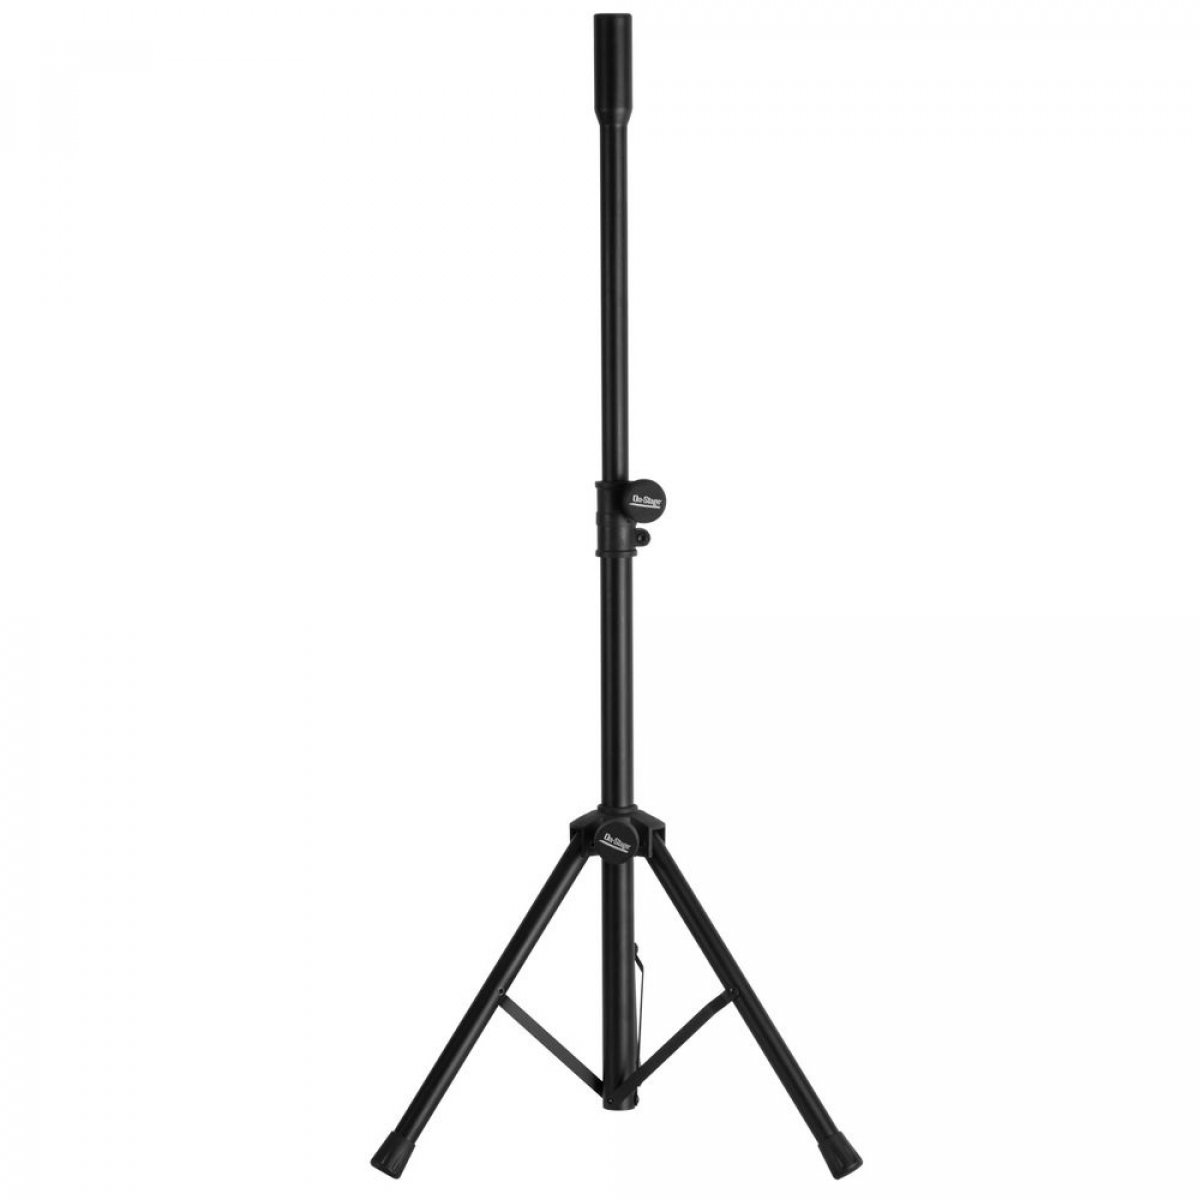 S1090 Adjustable Tripod Speaker Stand - Measures: 28 to 49'' (71.12 to 124.46cm)